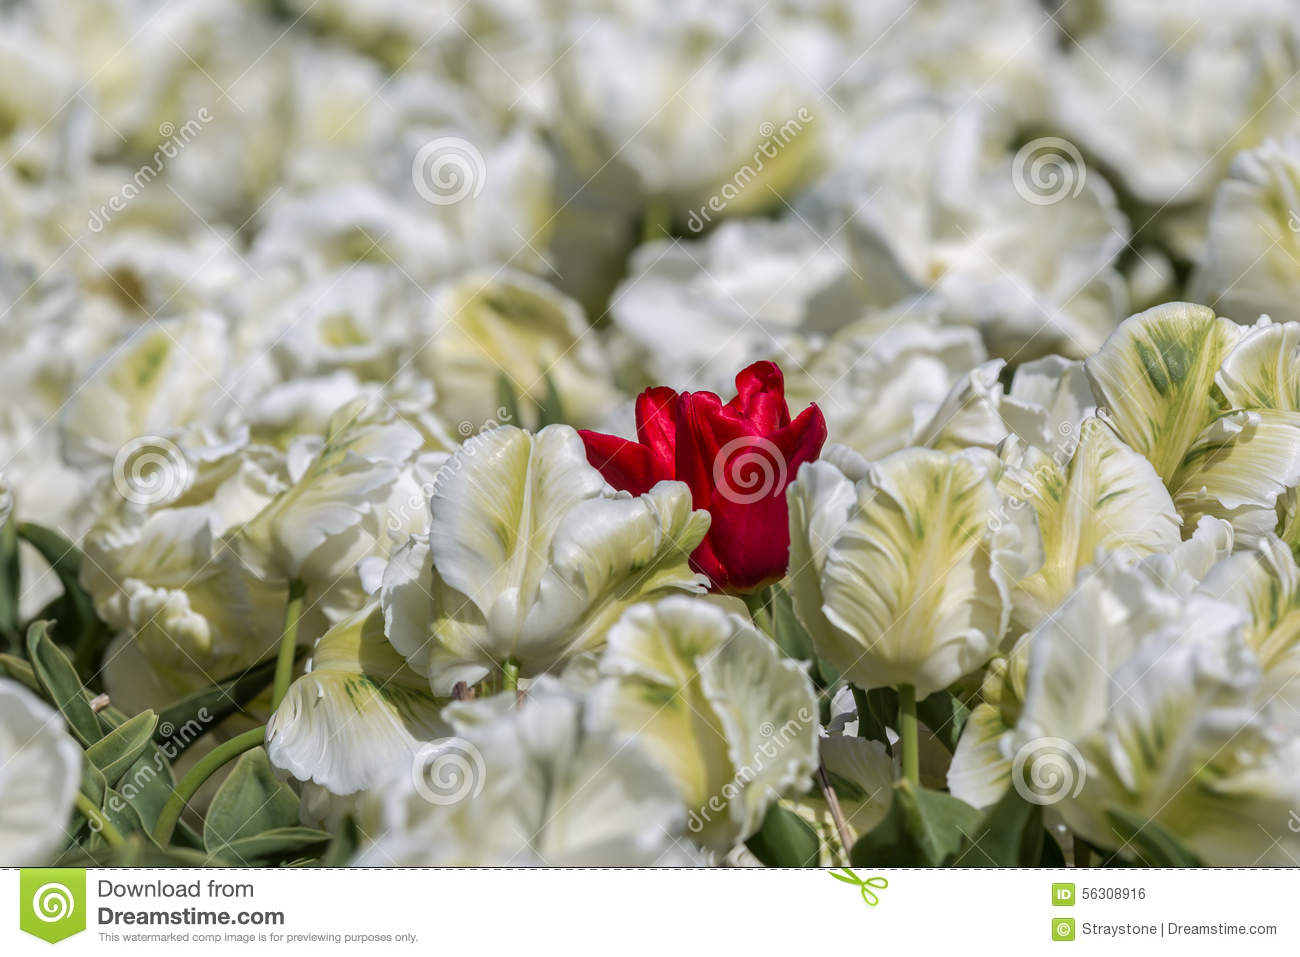 Daring To Be Different Stock Photo Image Of Landscape 56308916